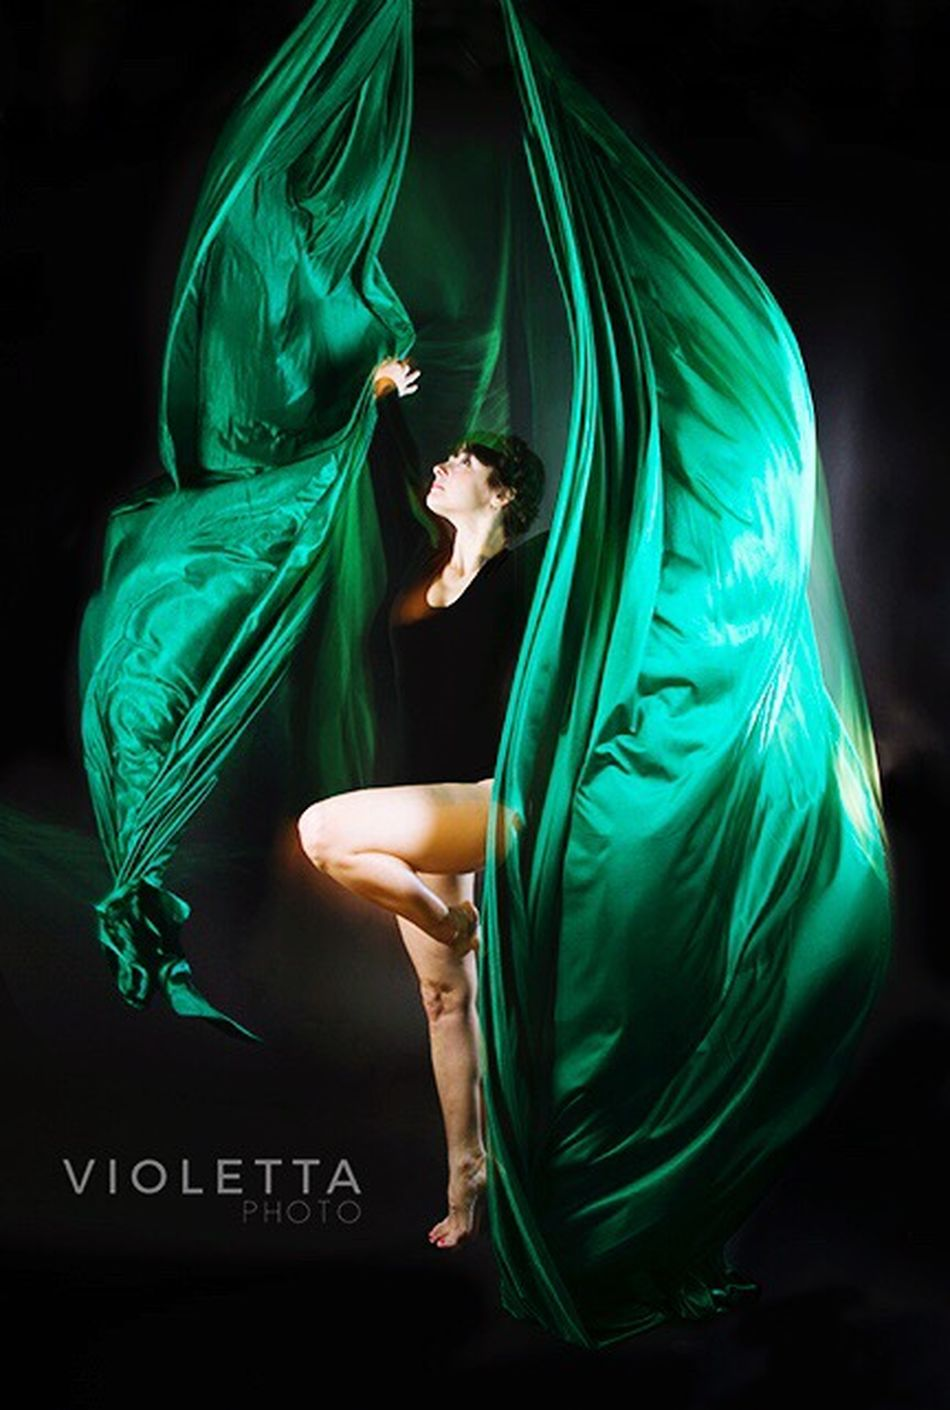 Green Color People Full Length Silk Aerial Photography Photography Photo Project Dancer Dance Photography Moving Motion Photooftheday Chicago Beautiful Woman Beauty Beautiful People